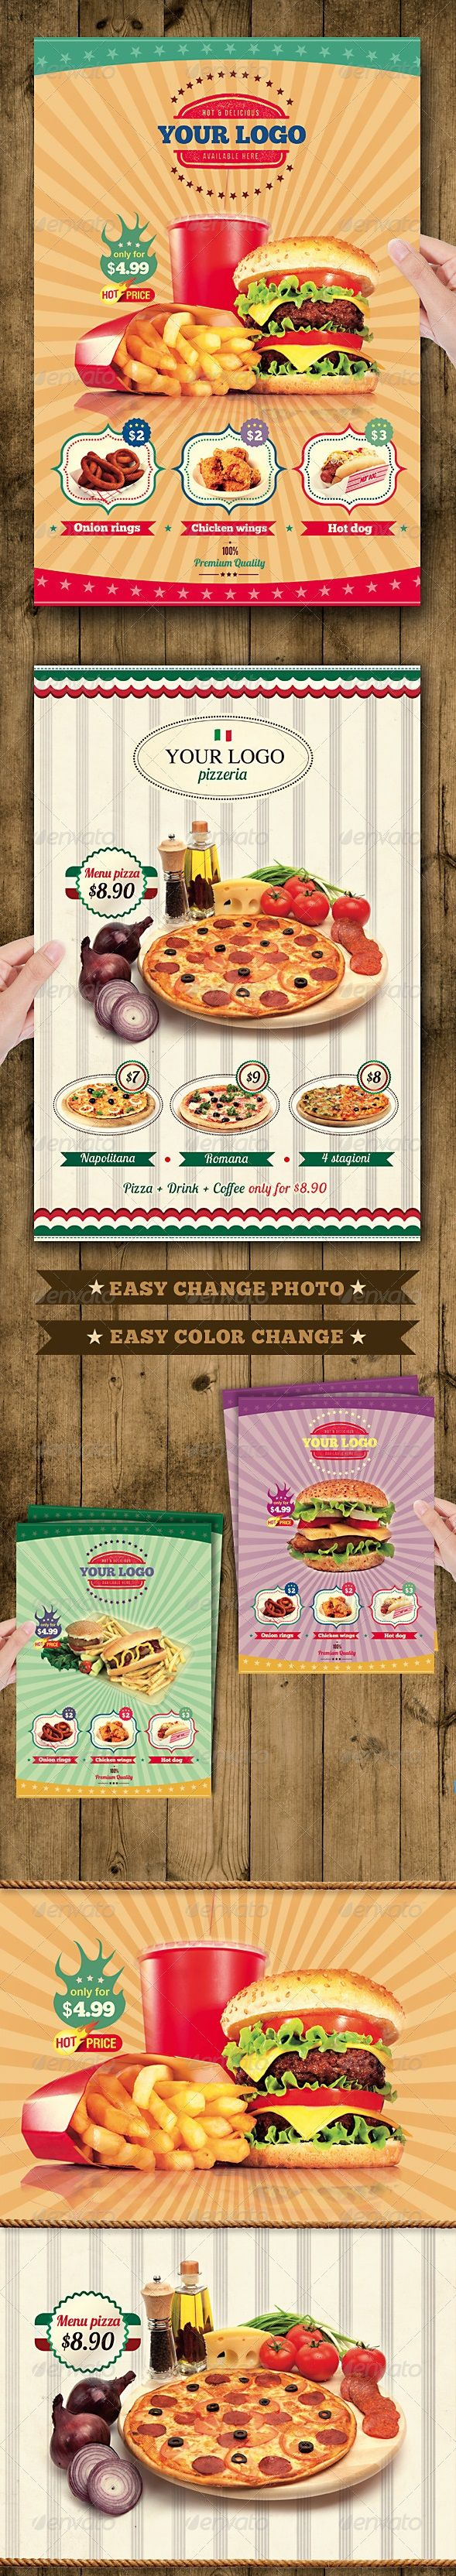 FAST FOOD FLYER MENU. Get it customized as per your needs in only $15.67 http://www.devloopers.com/design/flyers/restaurant-flyer/fast-food-flyer-menu